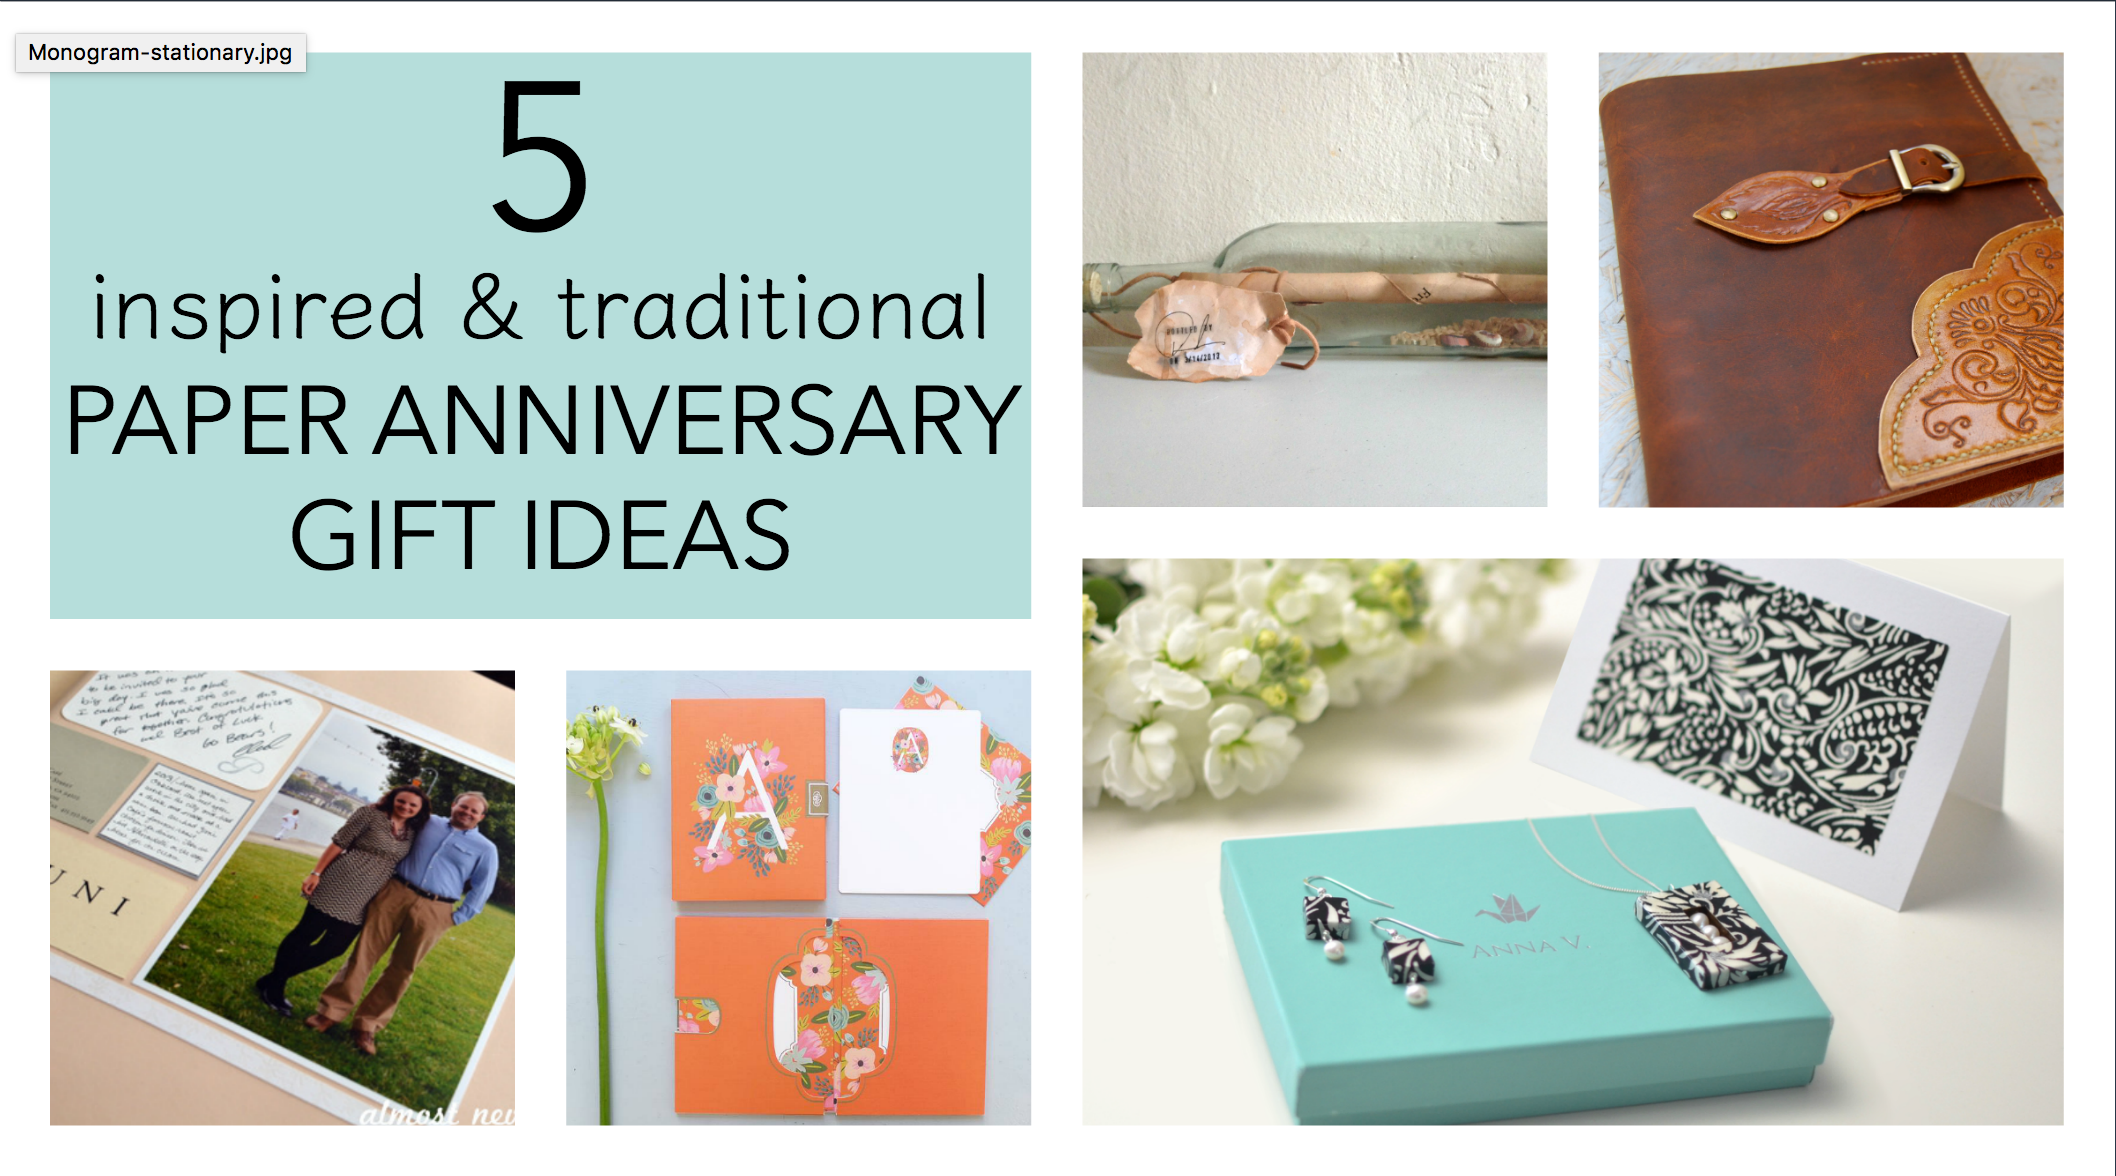 1 Year Anniversary Gift Ideas For Her : ... Paper Anniversary Gift Ideas for Her - Paper Anniversary by Anna V